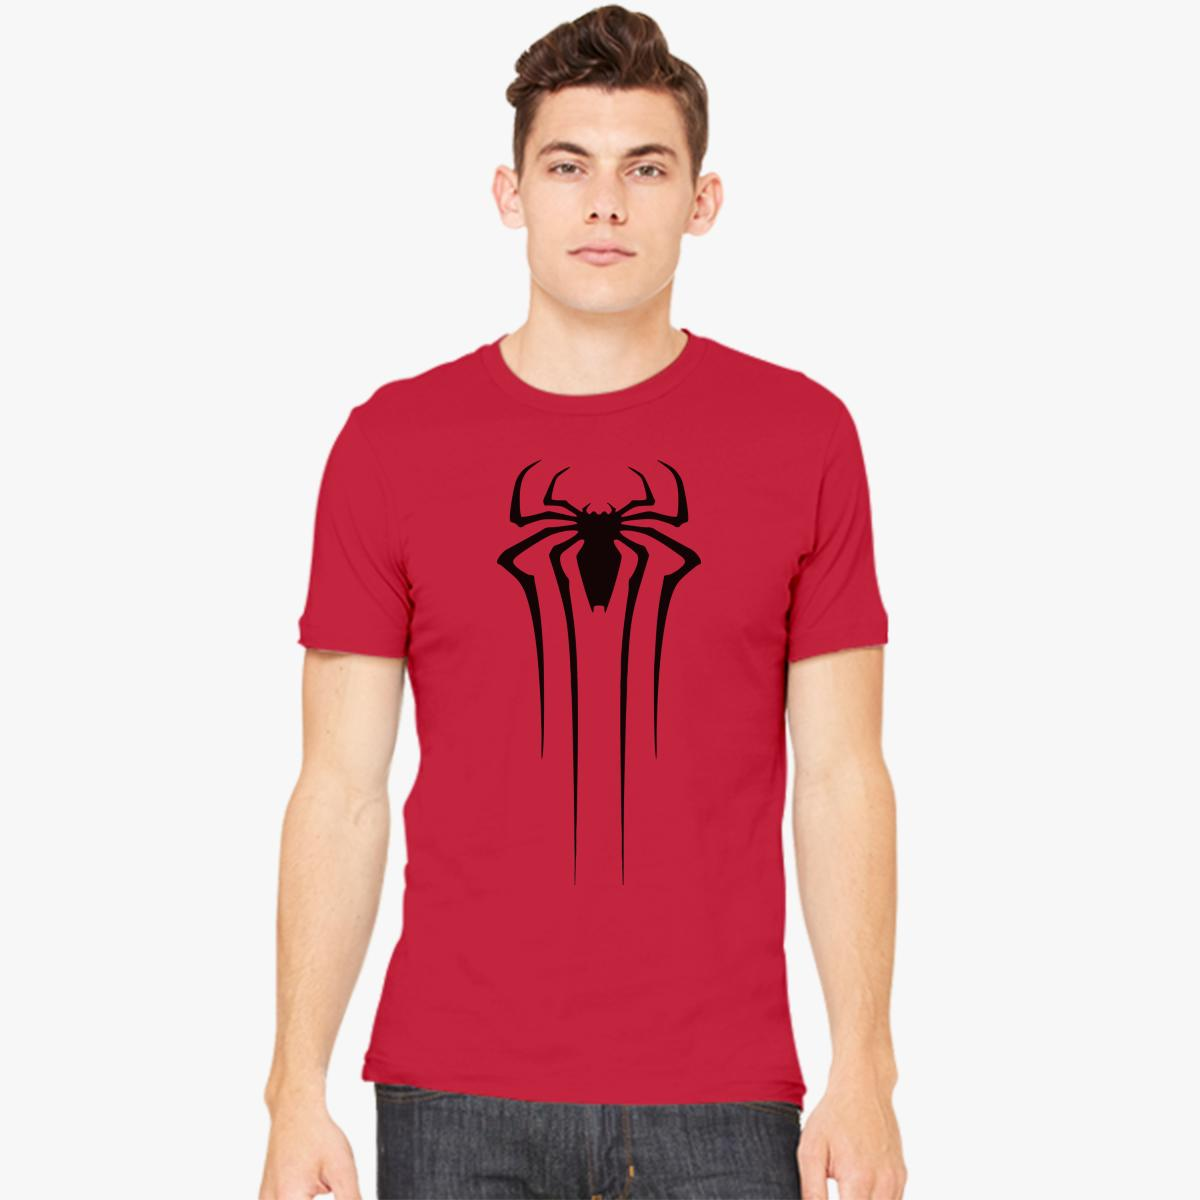 Spider-Man Men's T-shirt